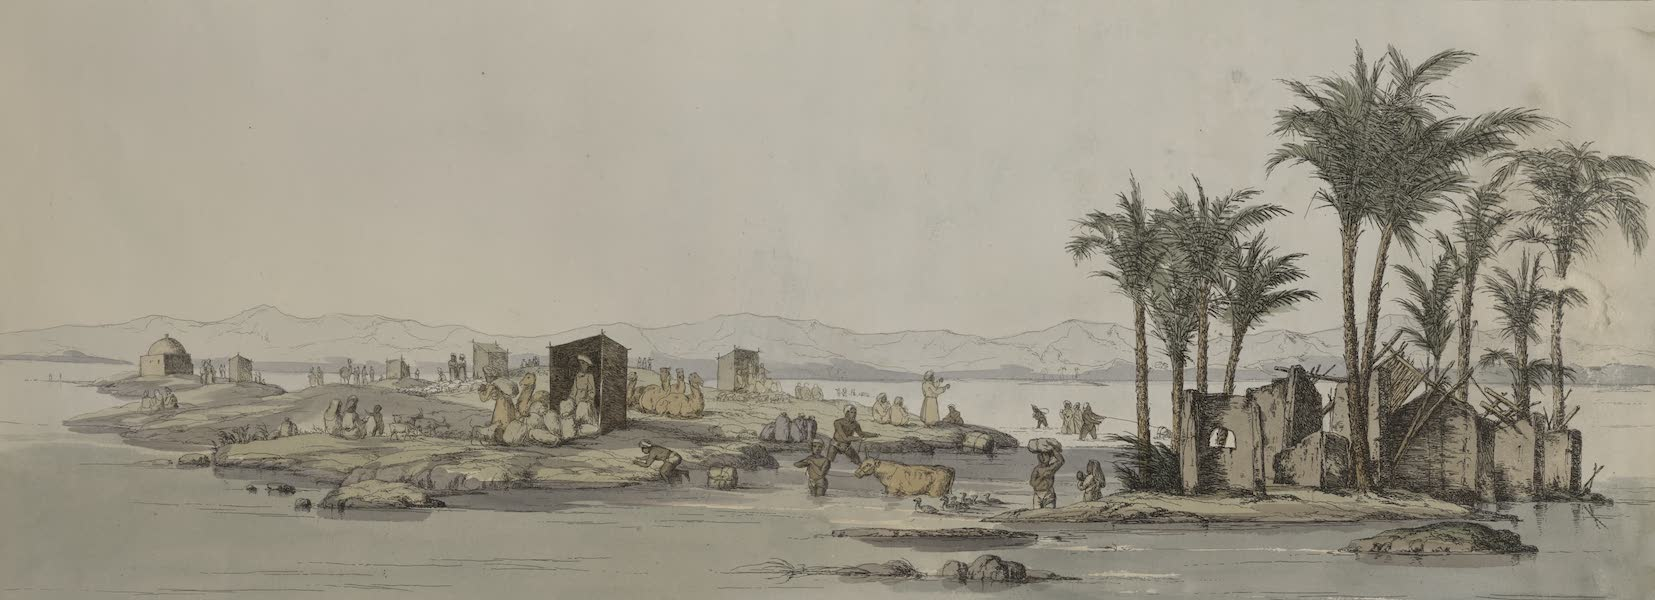 Plates Illustrative of the Researches and Operations of G. Belzoni - Overflowing of the Nile (1820)